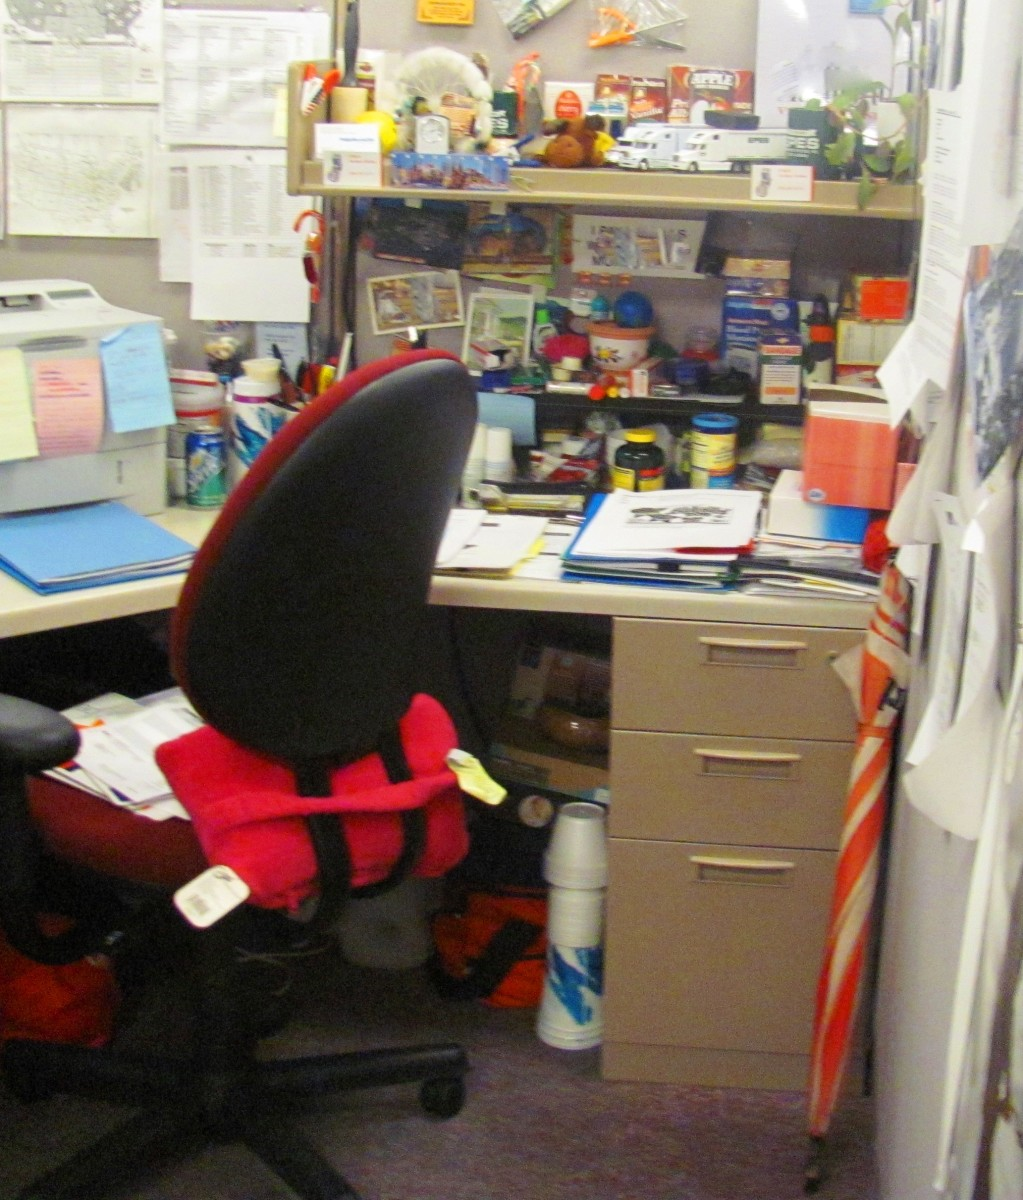 Office Cubicle Survival:  Courtesy, Productivity and Stress